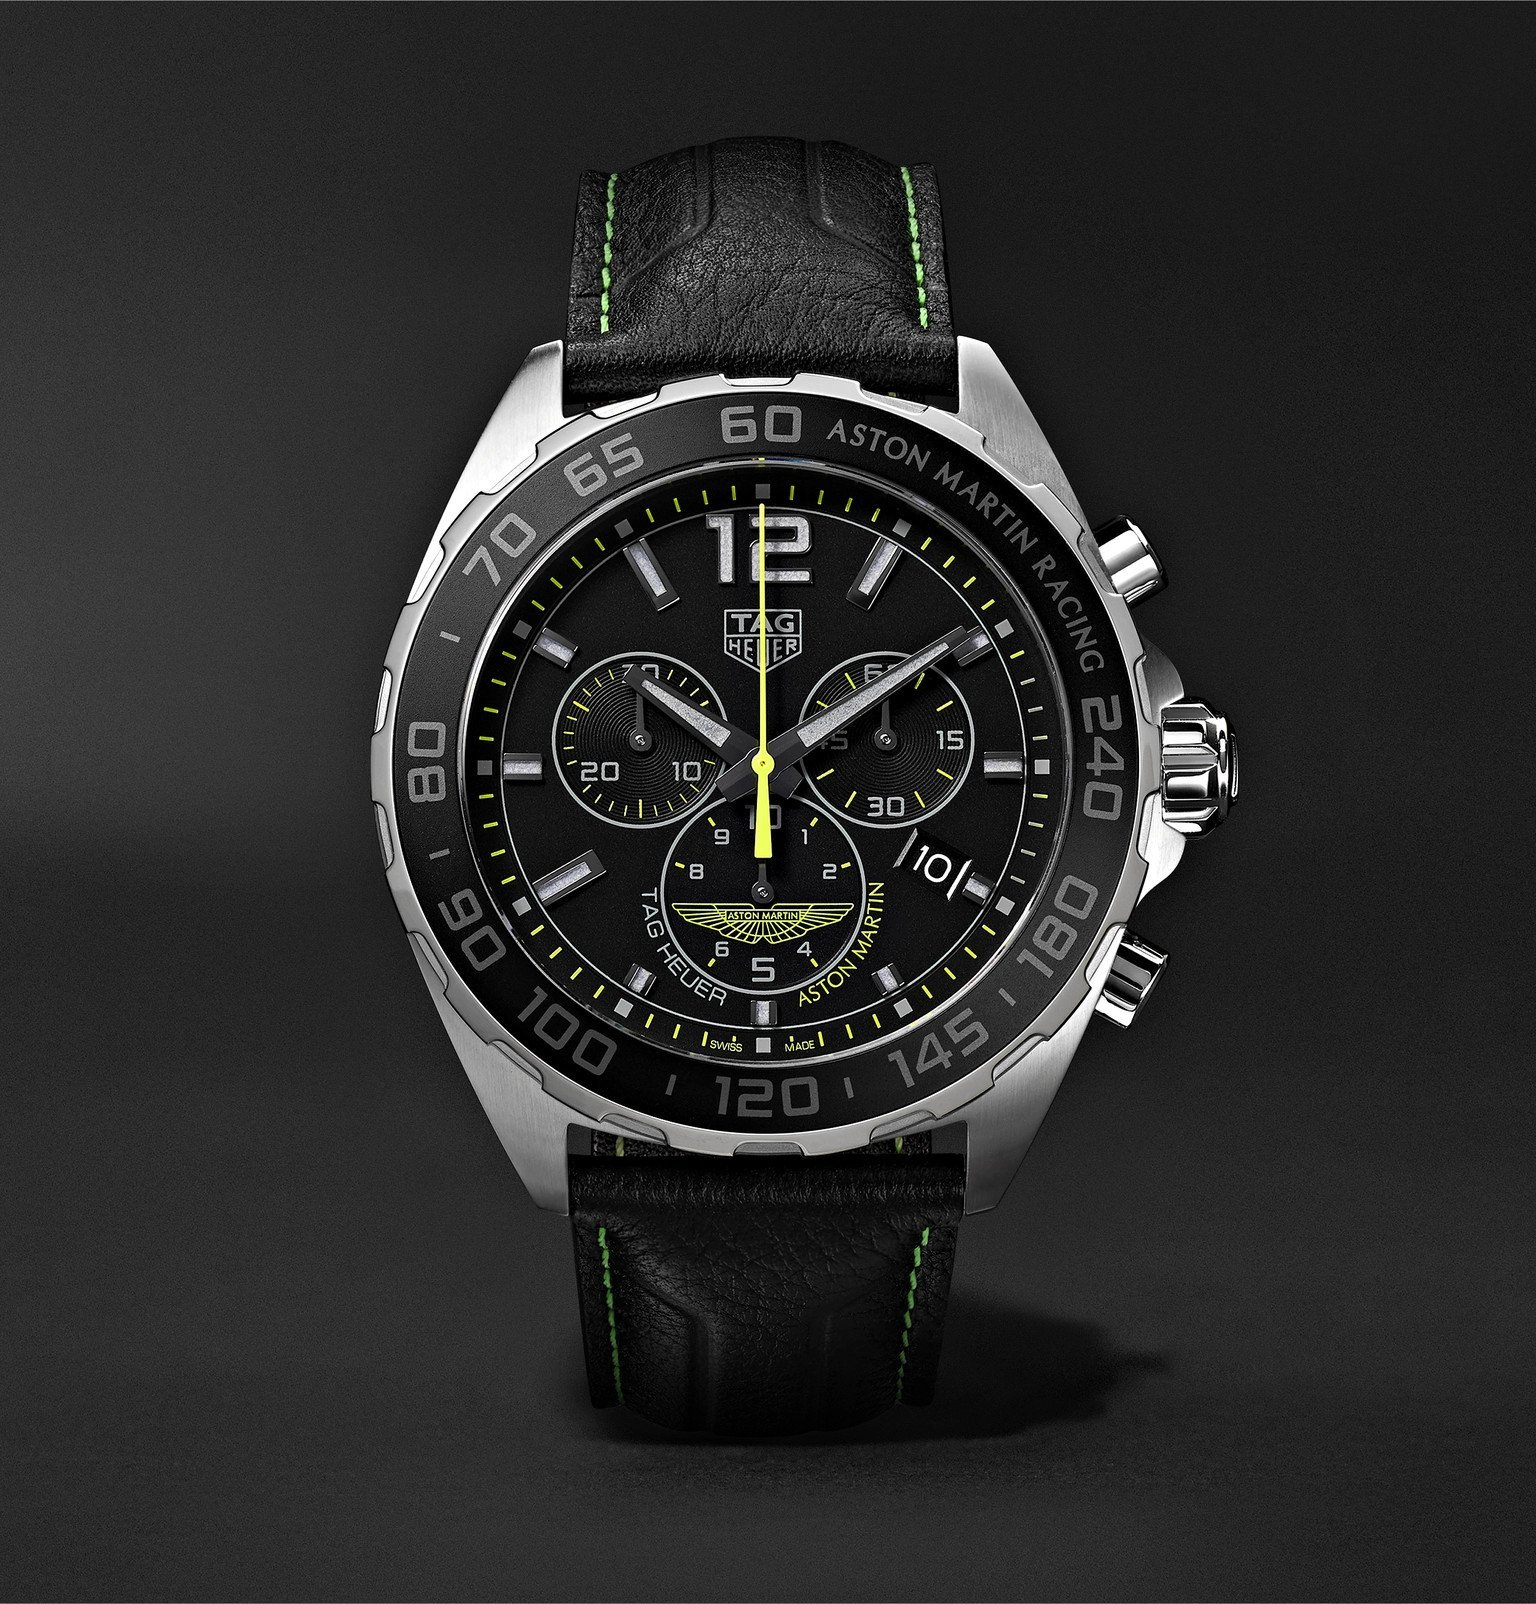 Photo: TAG Heuer - Formula 1 Limited Edition Aston Martin Quartz Chronograph 43mm Stainless Steel and Leather Watch, Ref. No. CAZ101P.FC8245 - Black